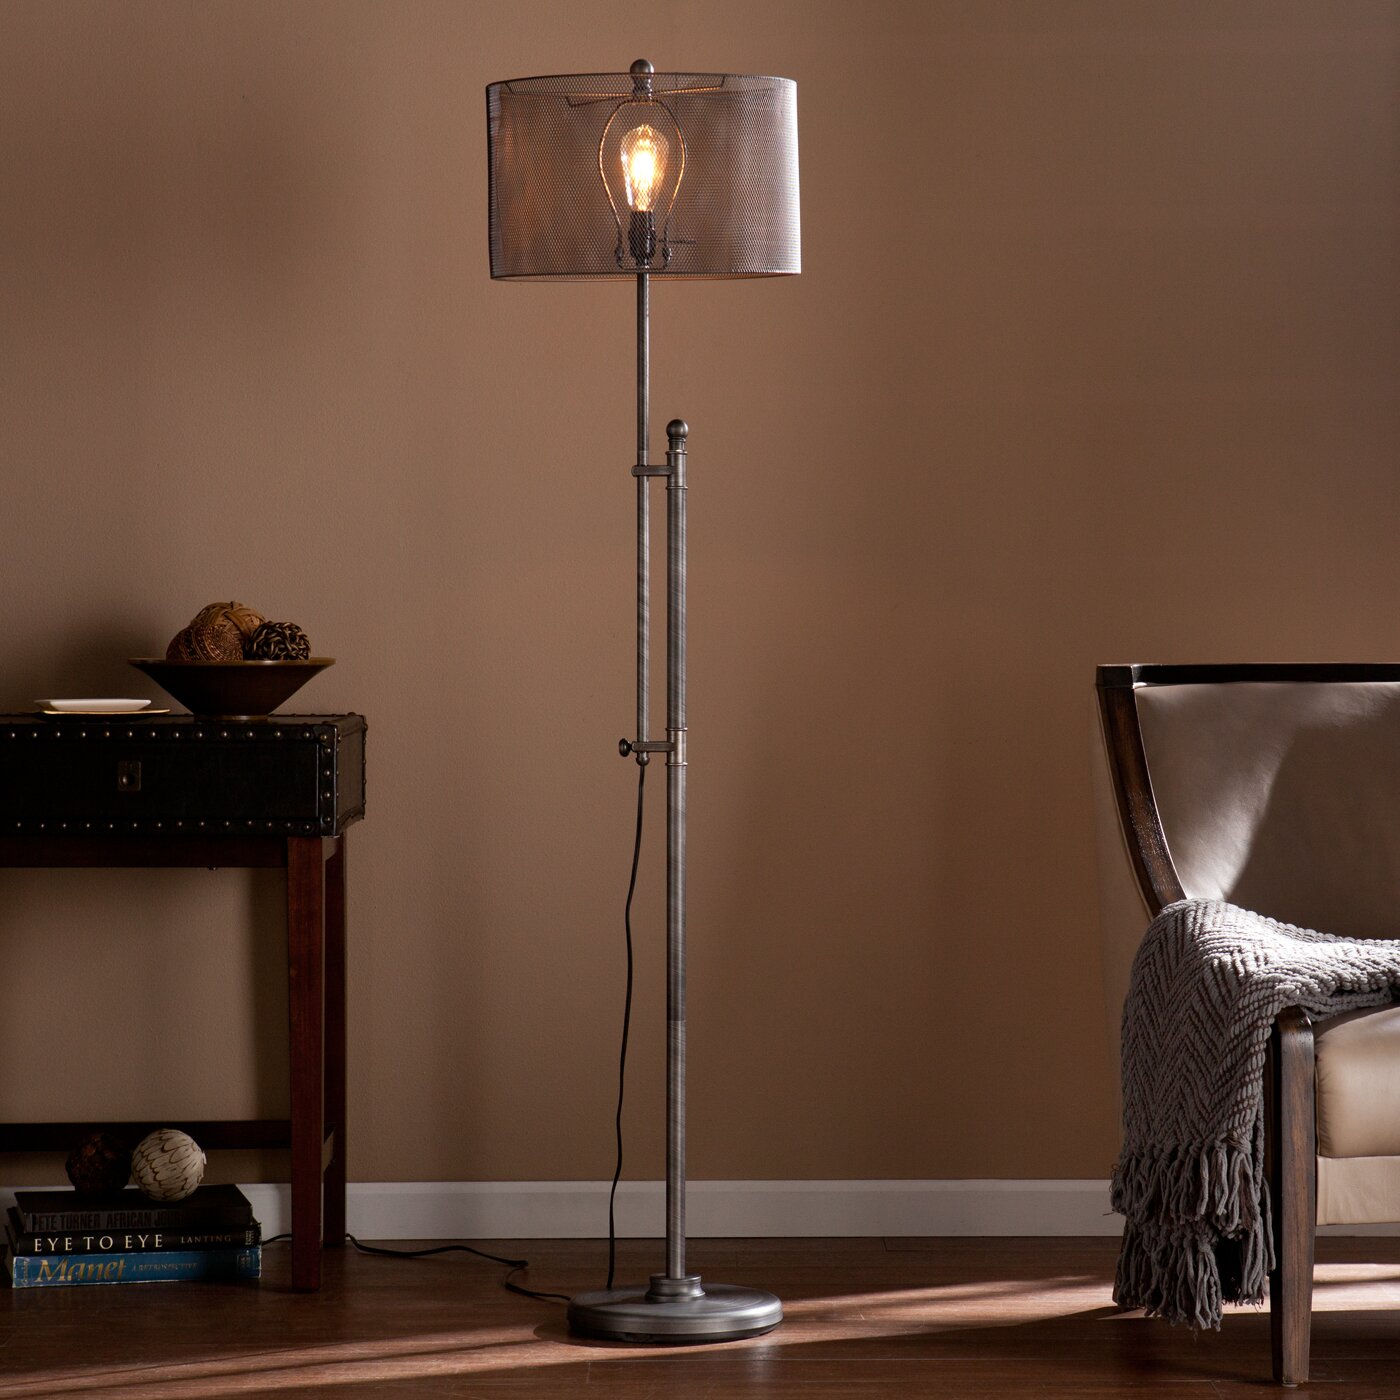 trent austin design germain 66 led floor lamp reviews wayfair. Black Bedroom Furniture Sets. Home Design Ideas